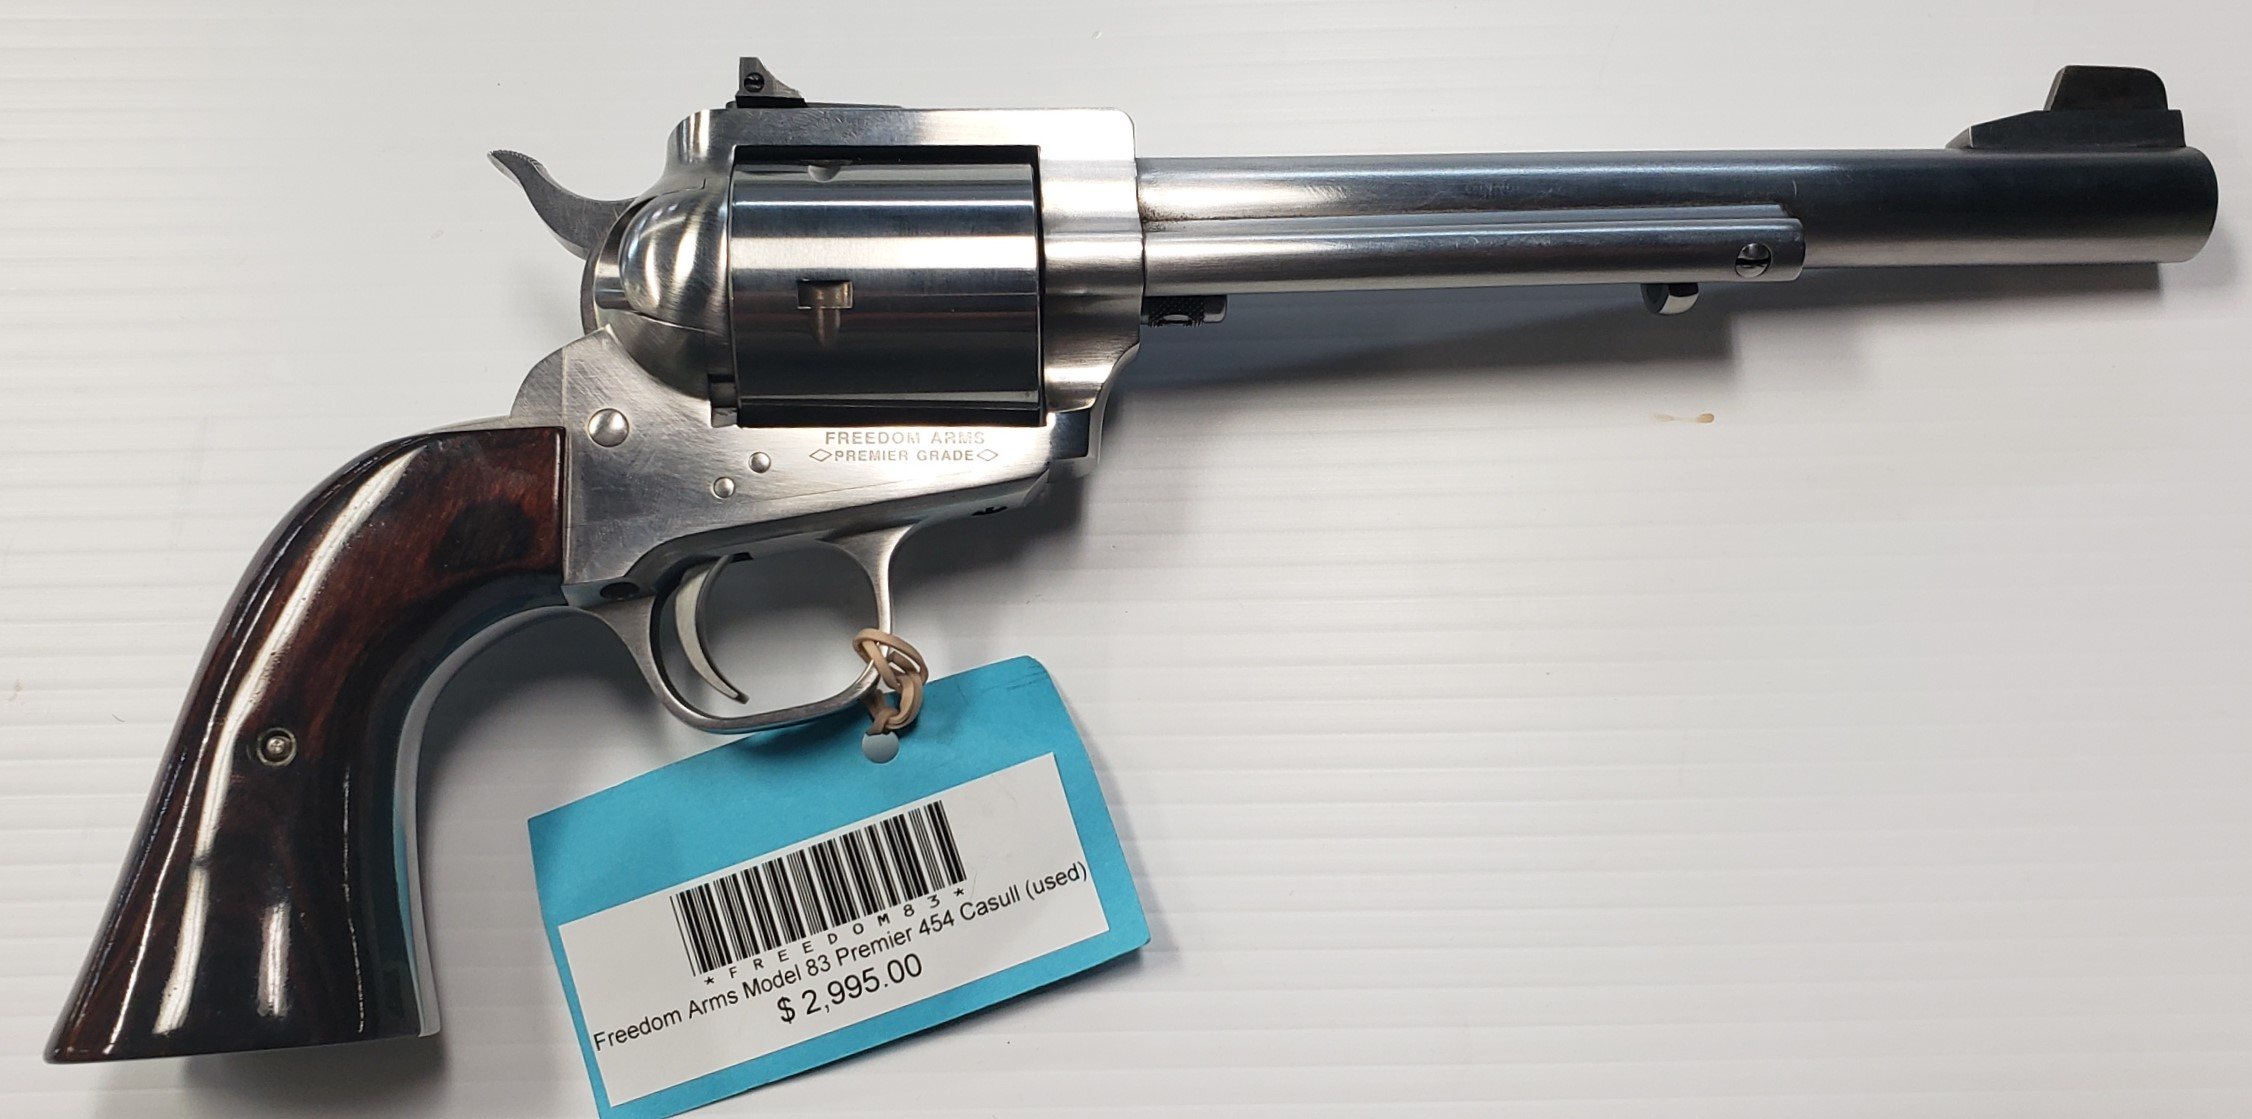 Freedom Arms Model 83 Premier 454 Casull (used)